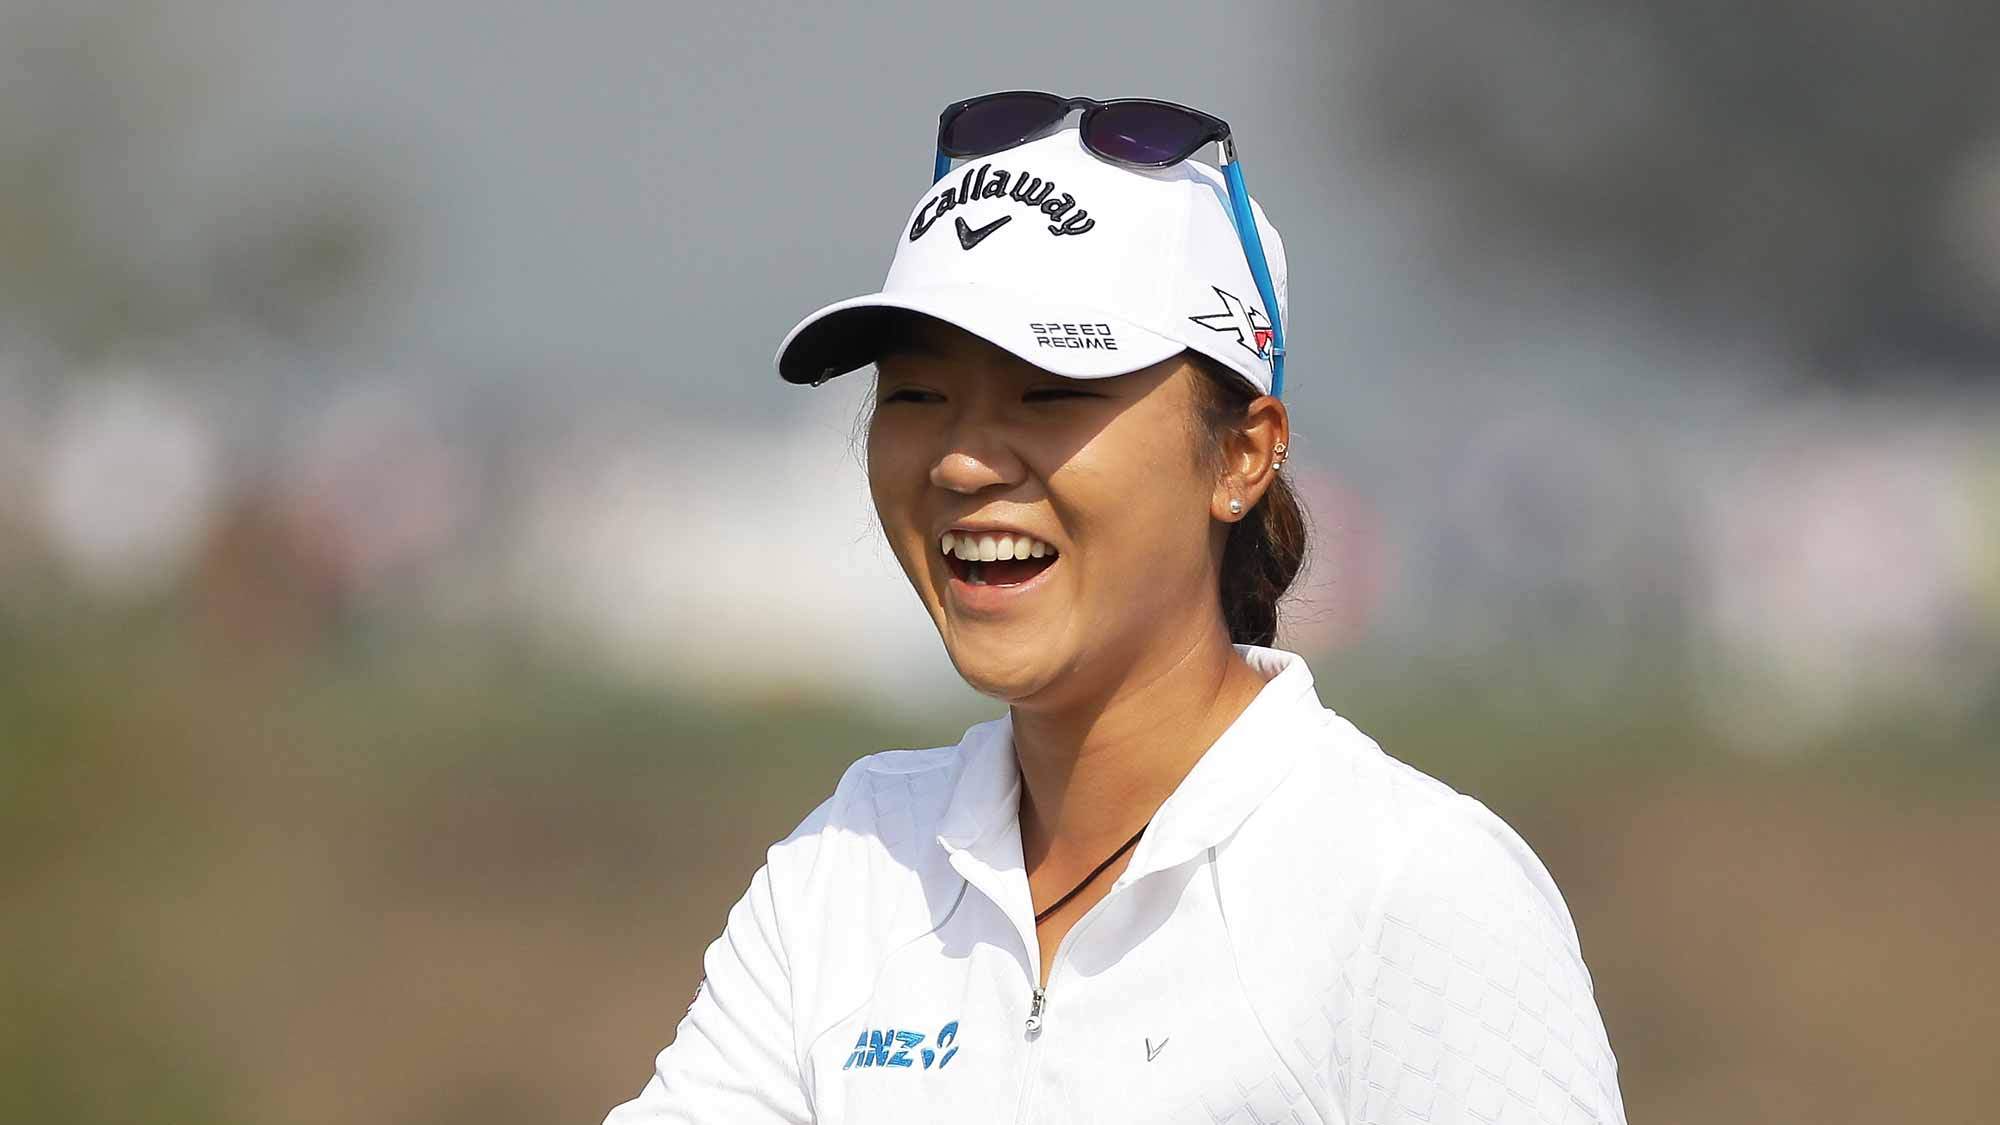 Lydia Ko of New Zealand reacts before a putt on the 6th green during round three of the LPGA KEB Hana Bank